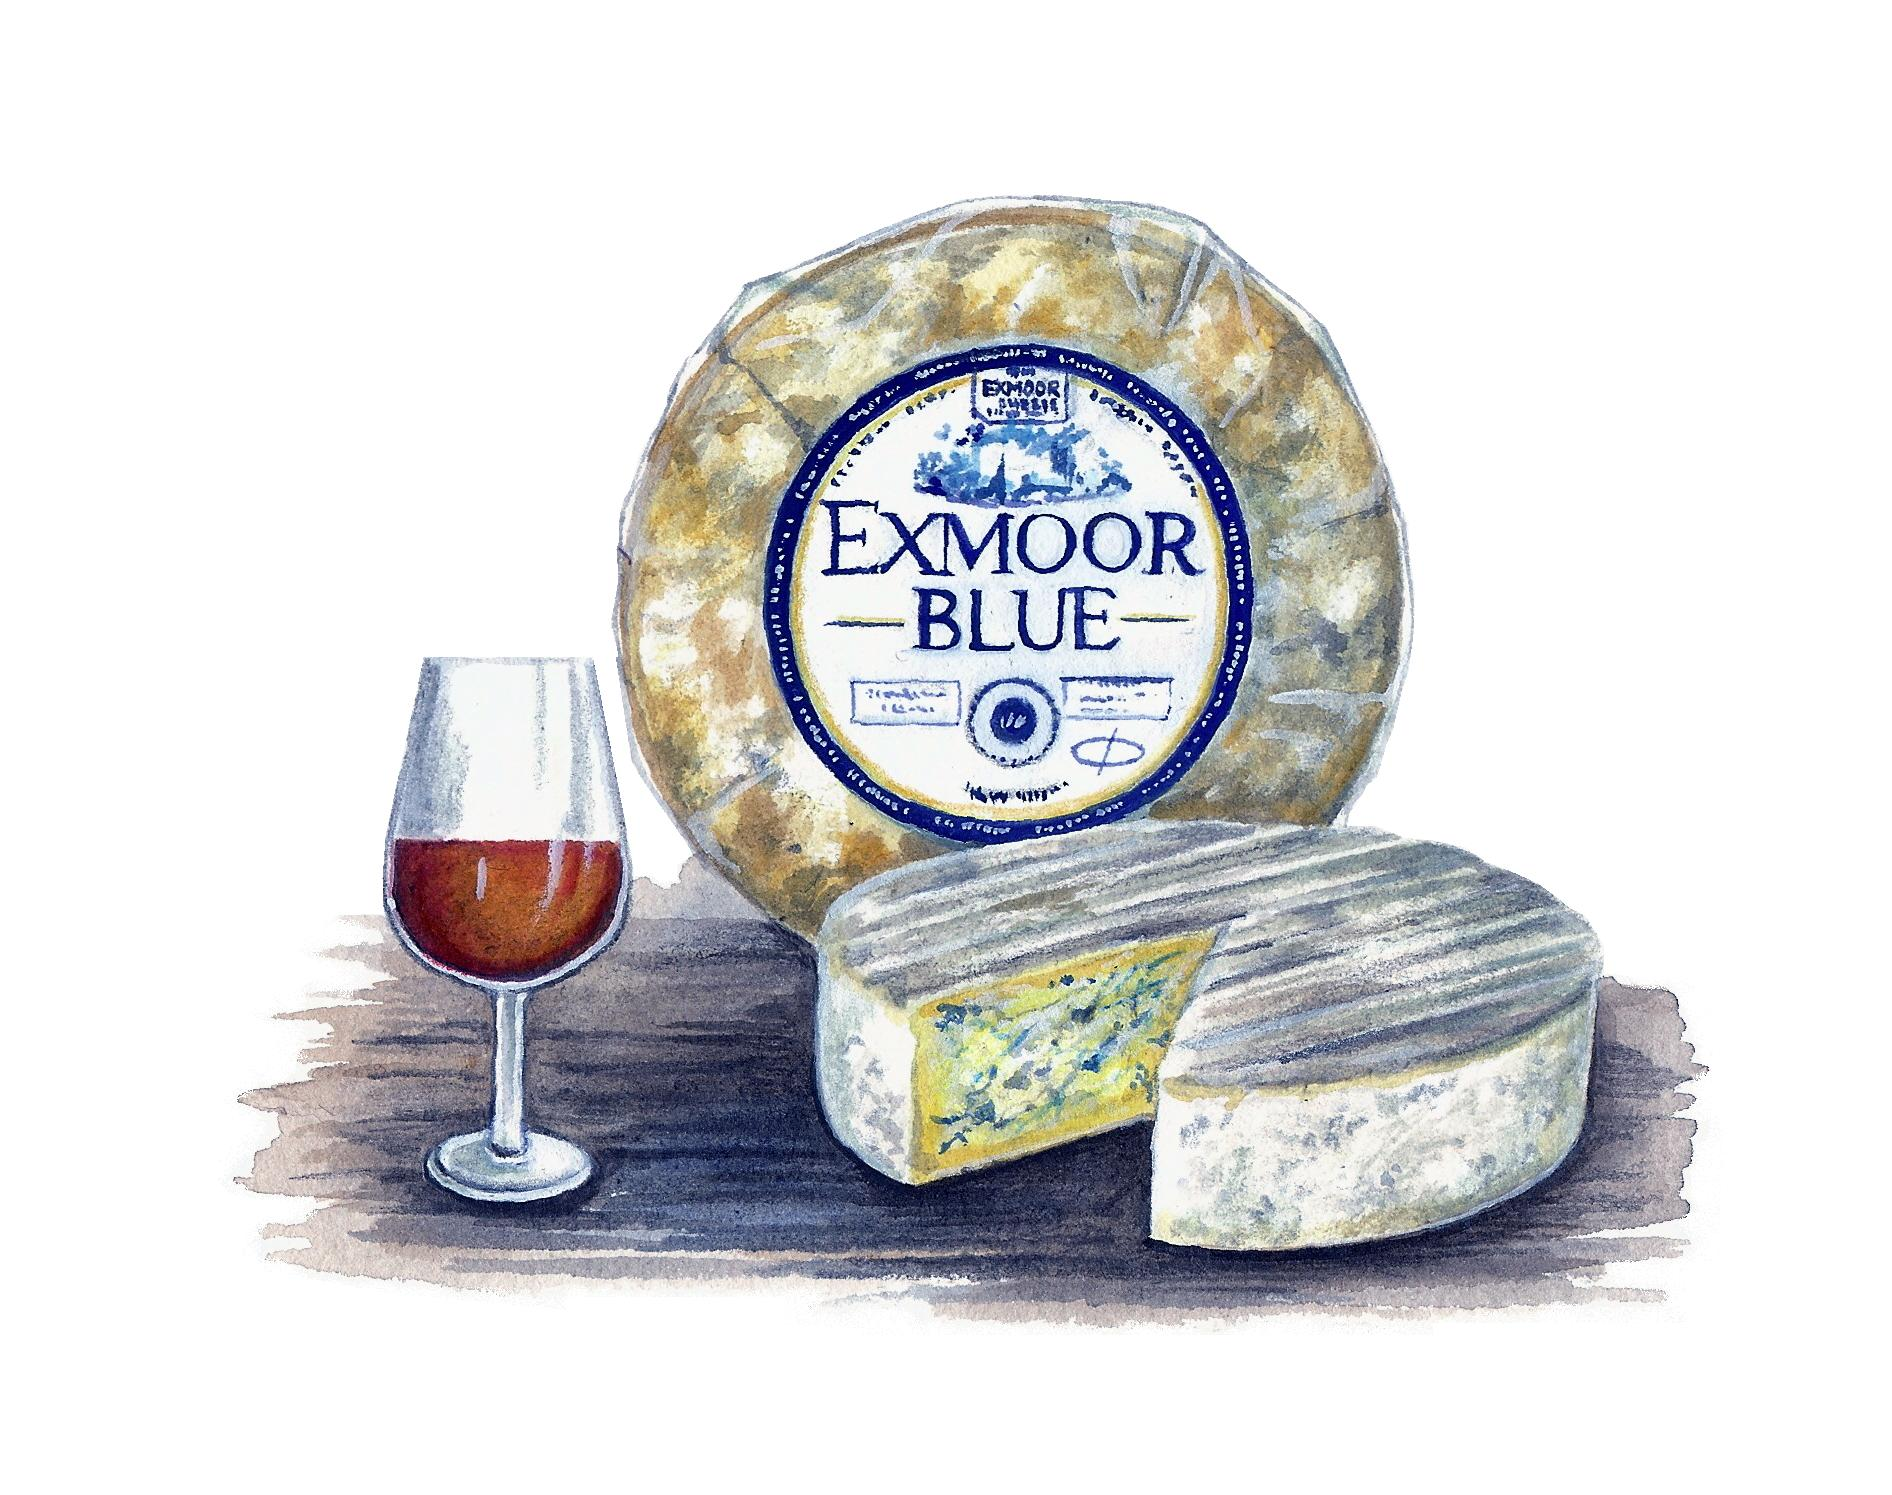 Exmoor Blue Cheese Artwork